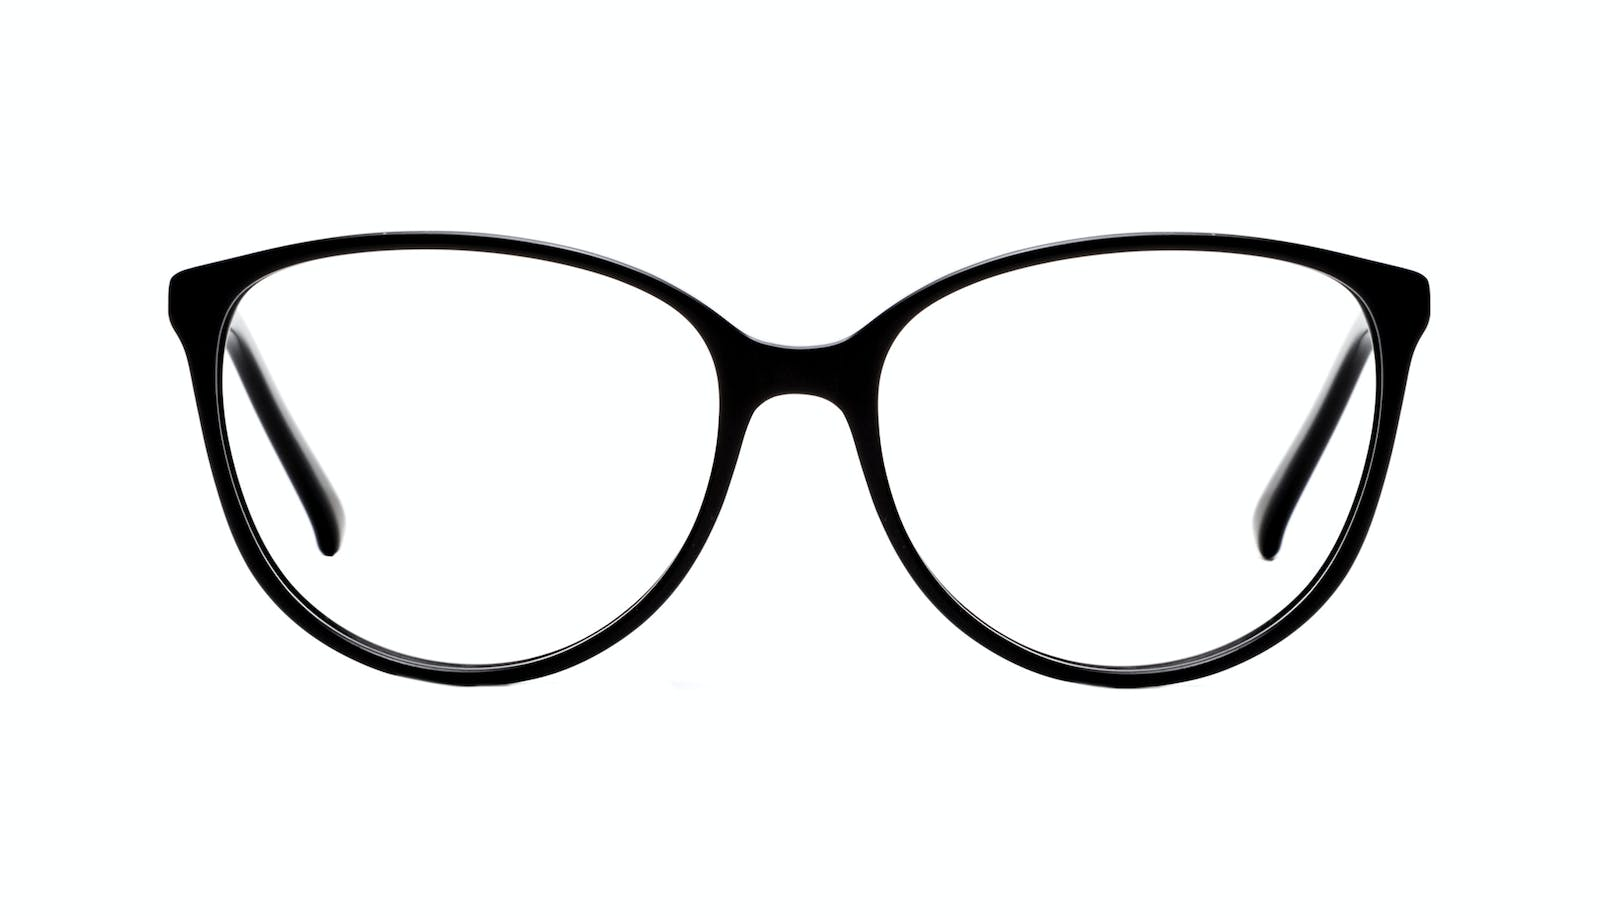 women\'s Fashion Eyeglasses: Affordable Eyewear For women | Bonlook